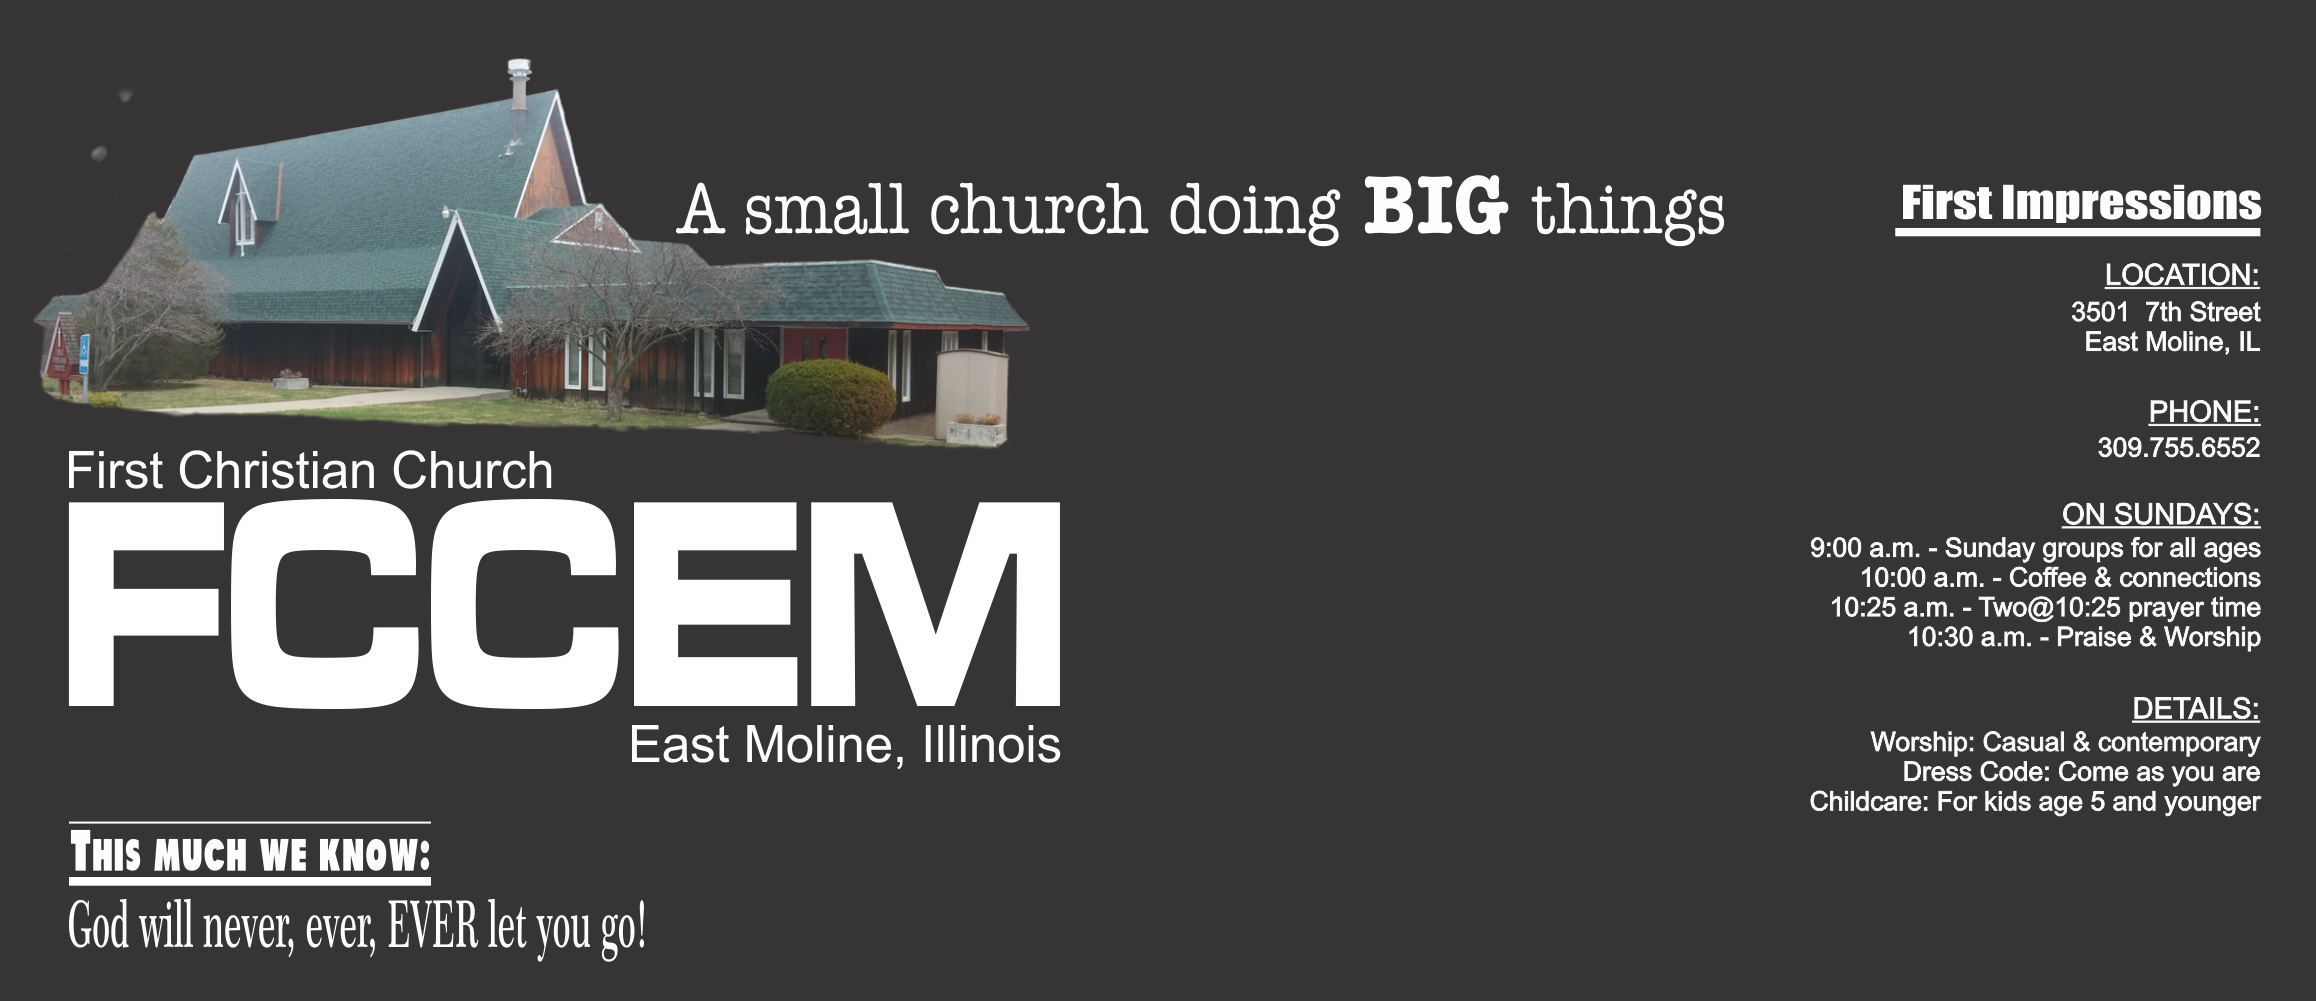 First Christian Church of East Moline